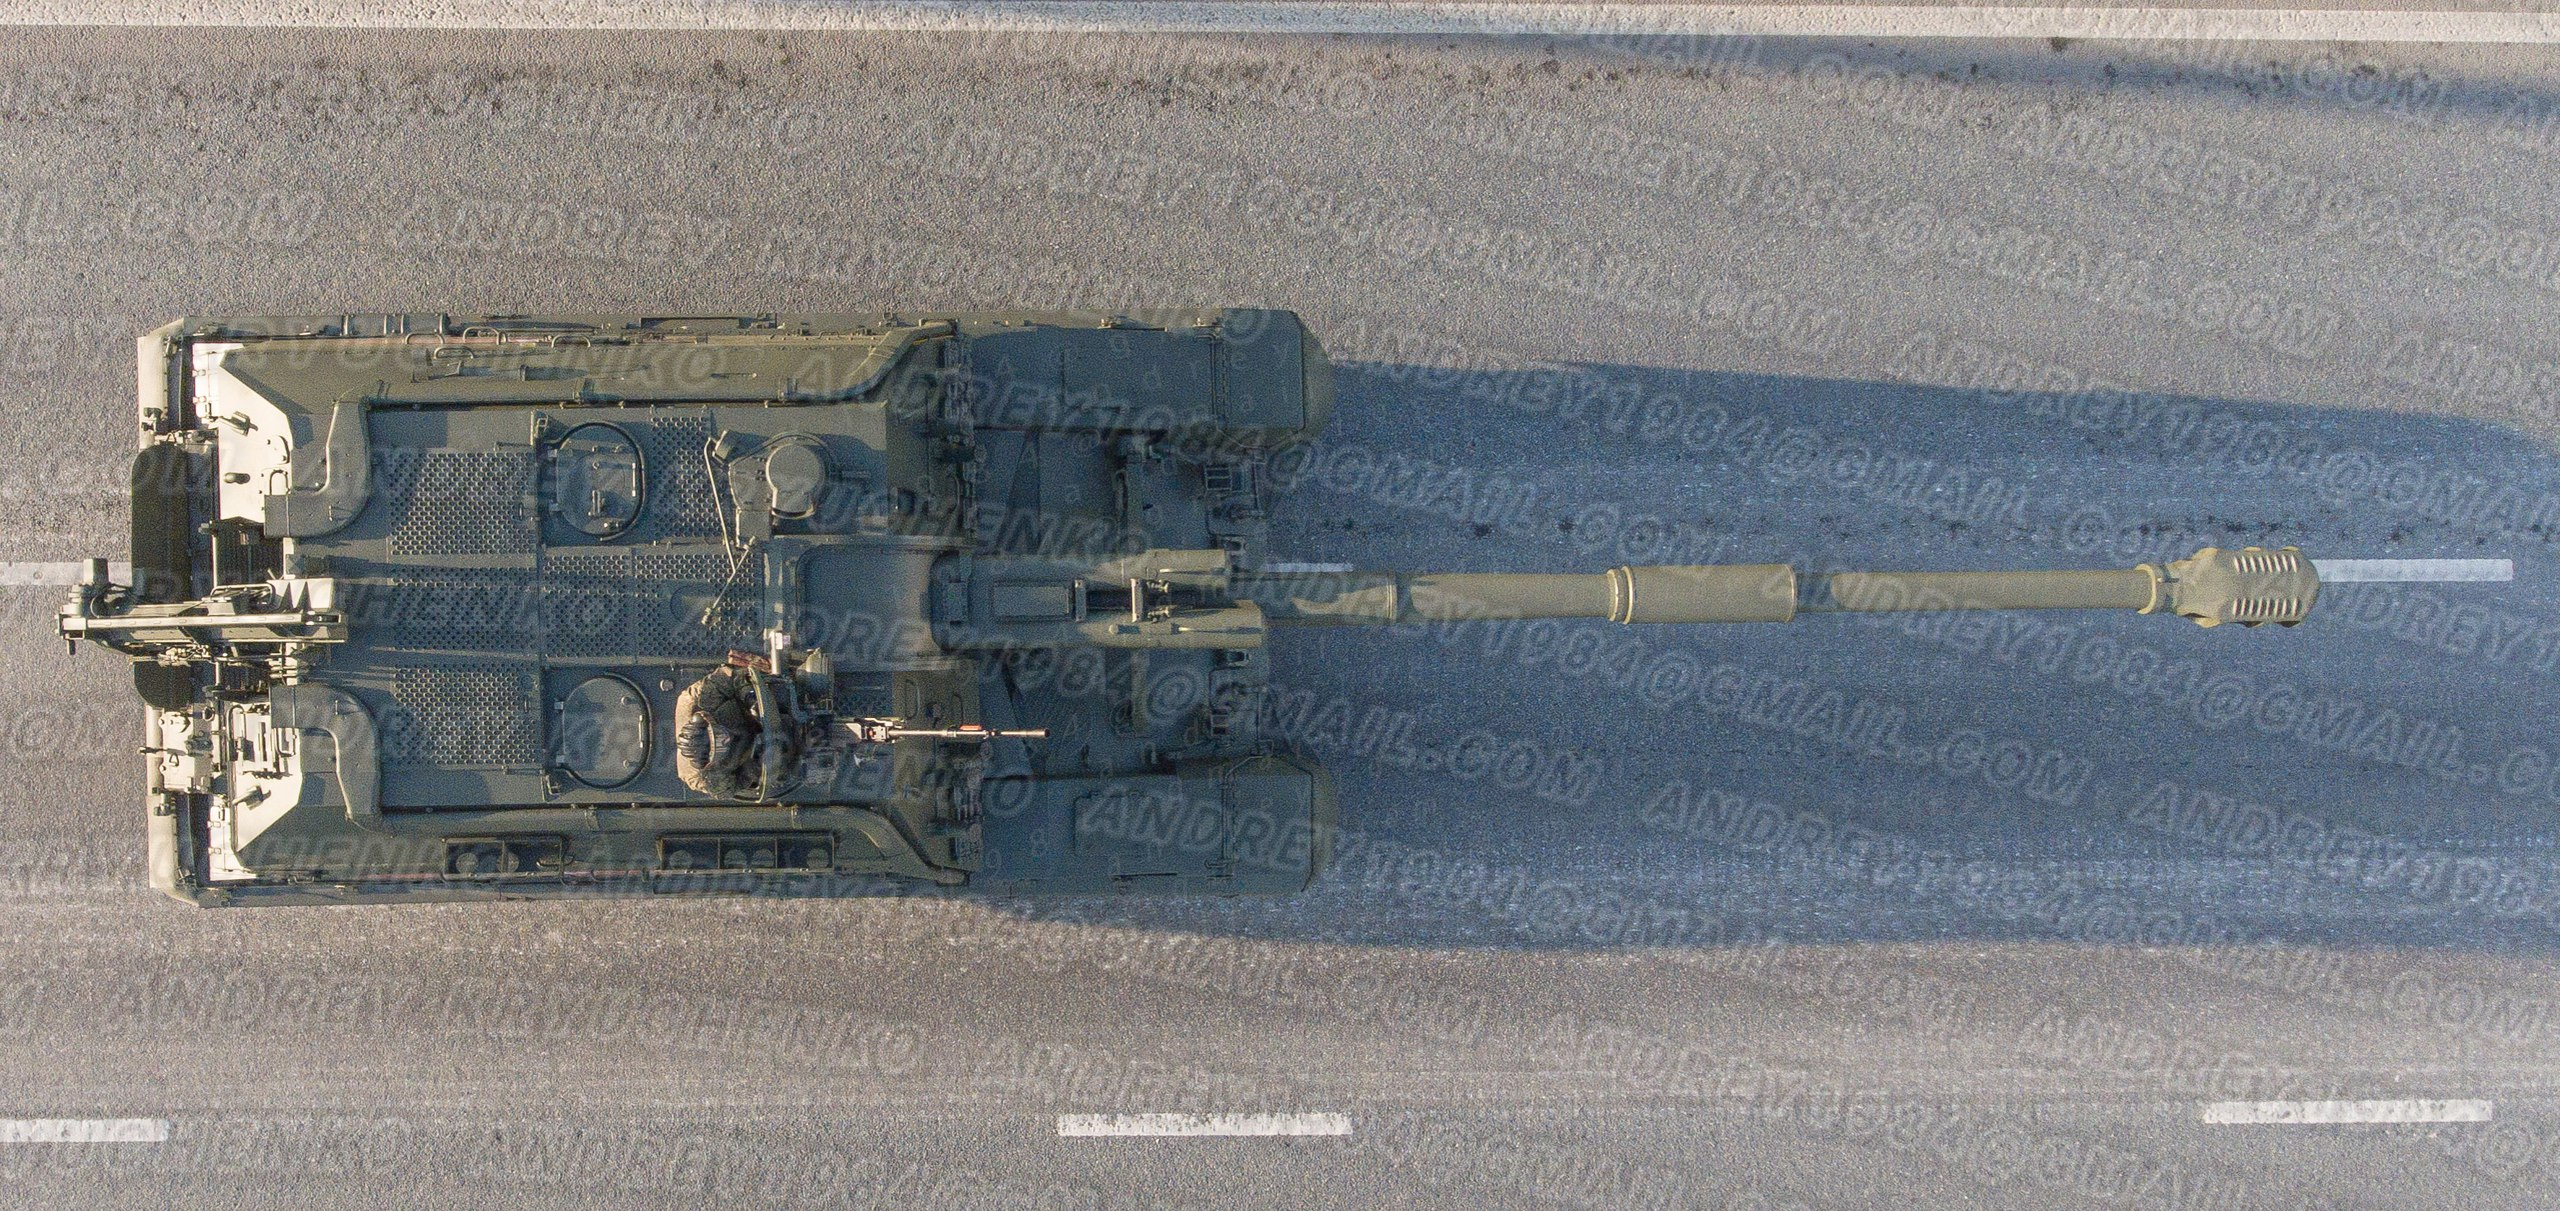 2S19M2 Msta-S, top view.